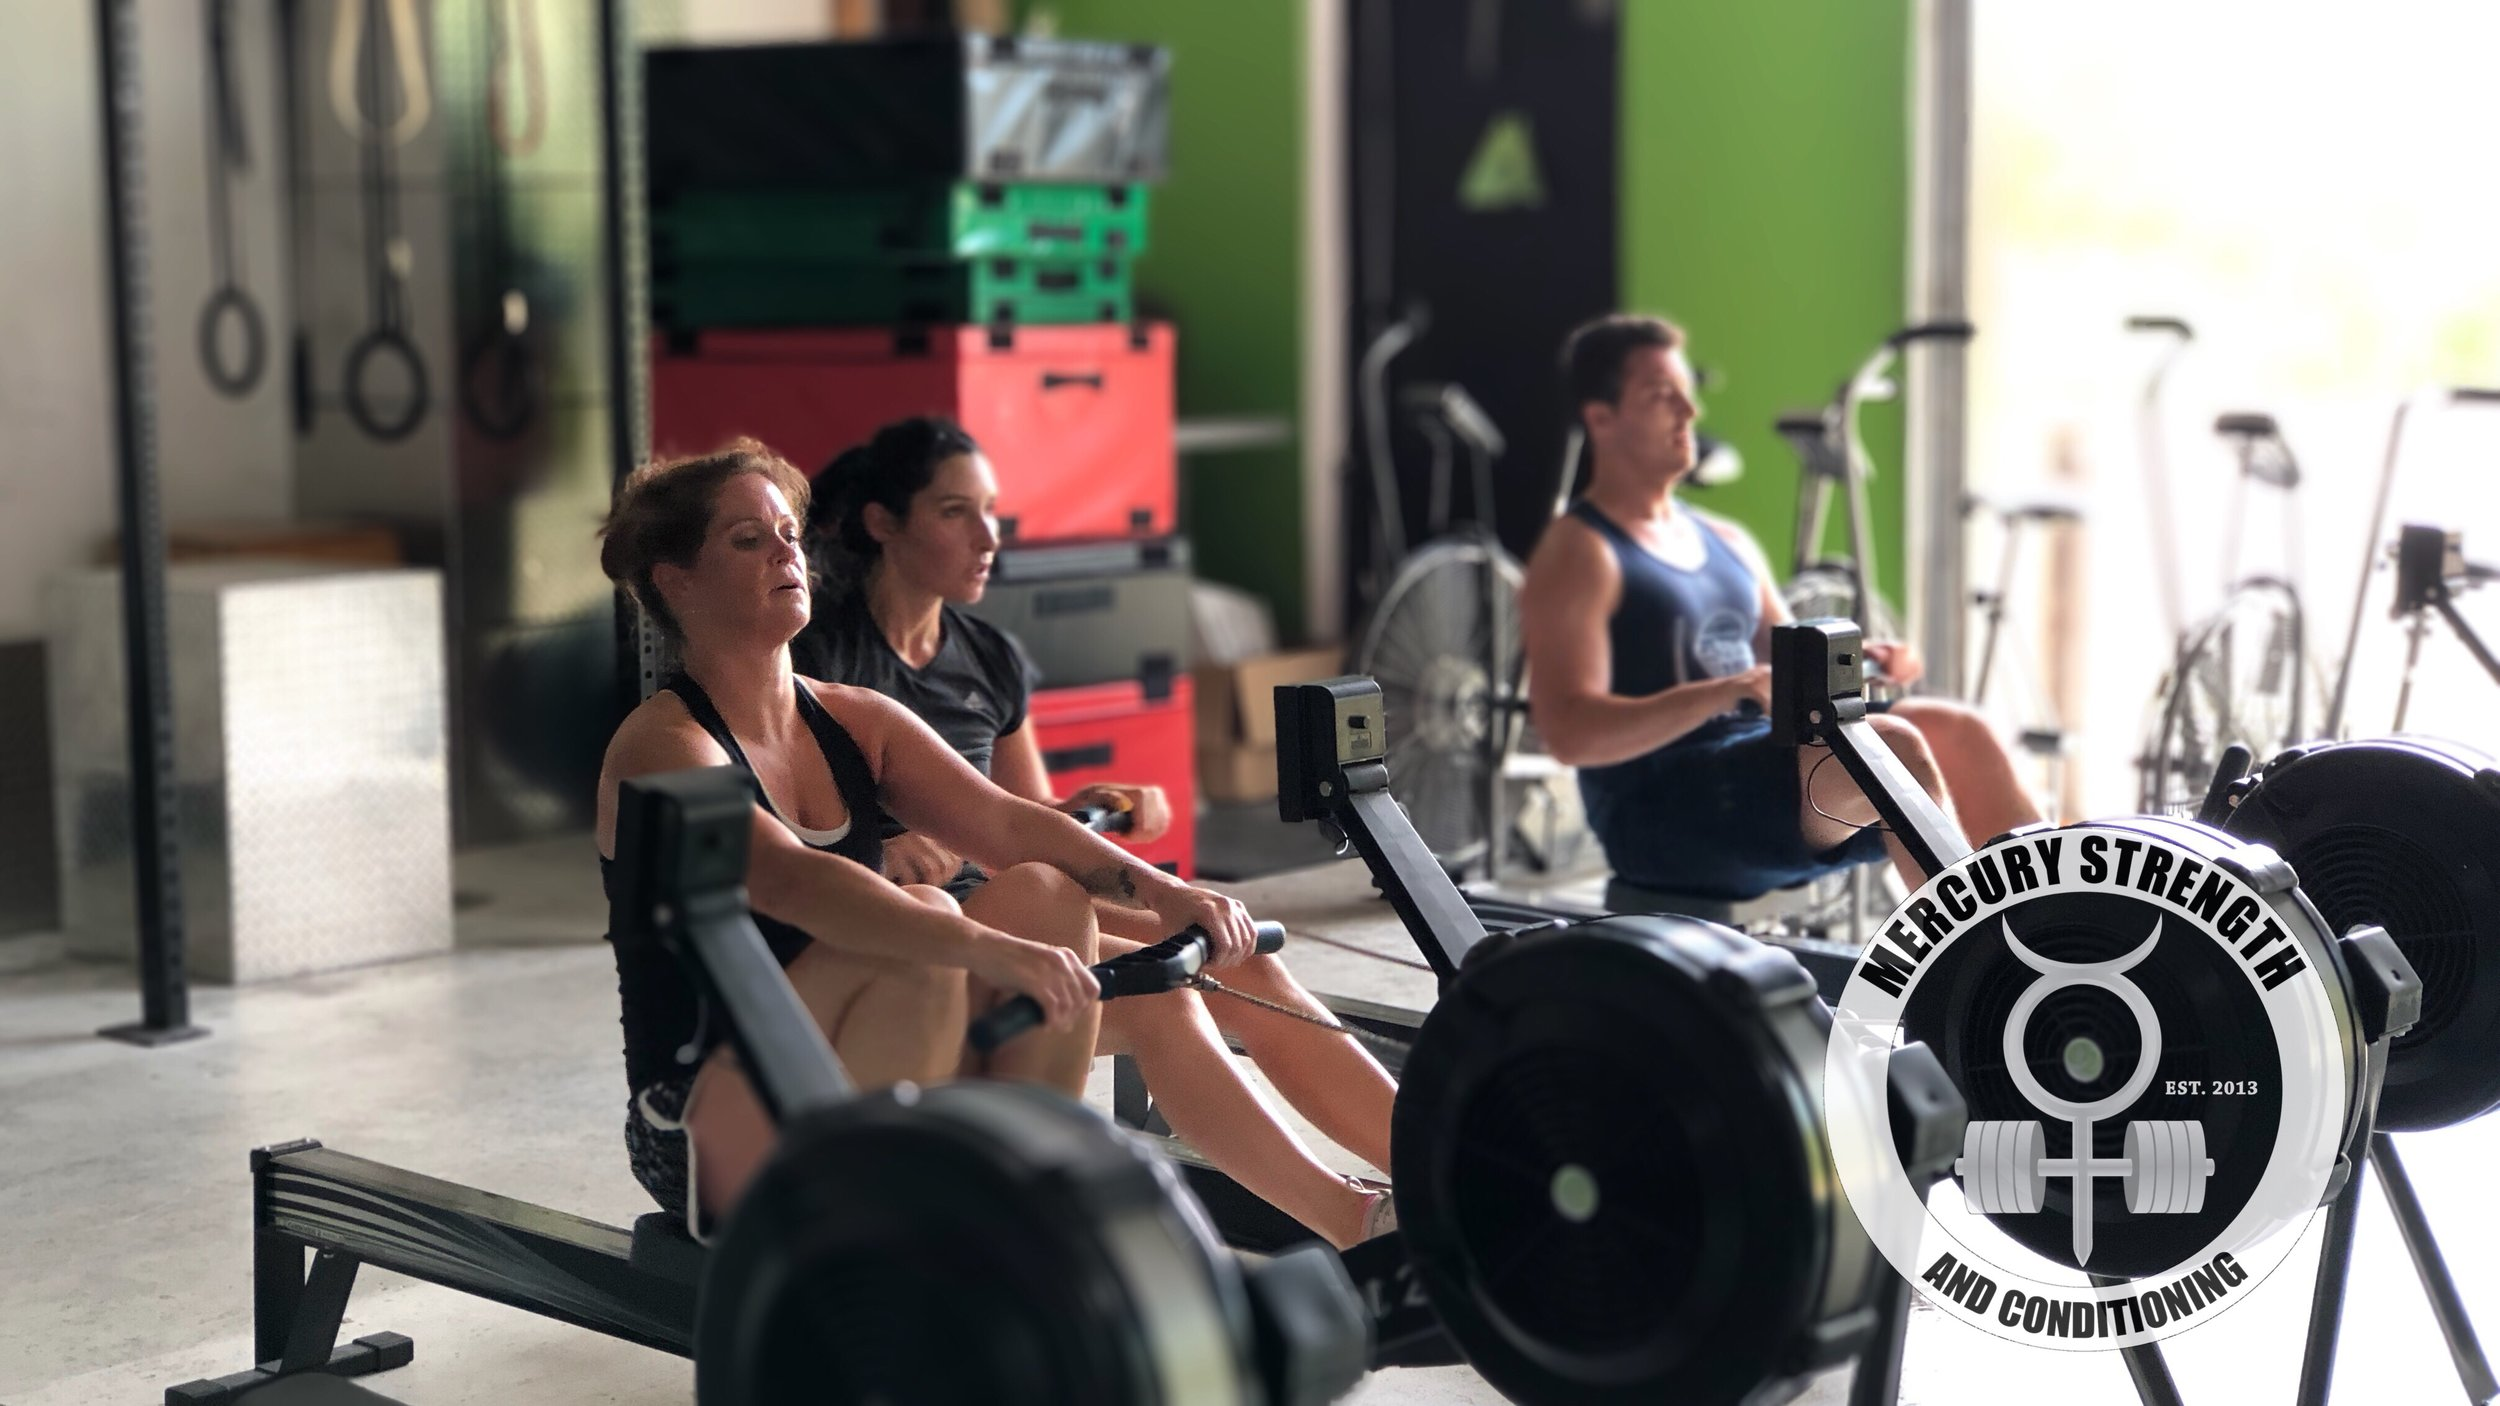 Cari, Mel, and Eddy pushing out a 2k row with burpees thrown in the mix